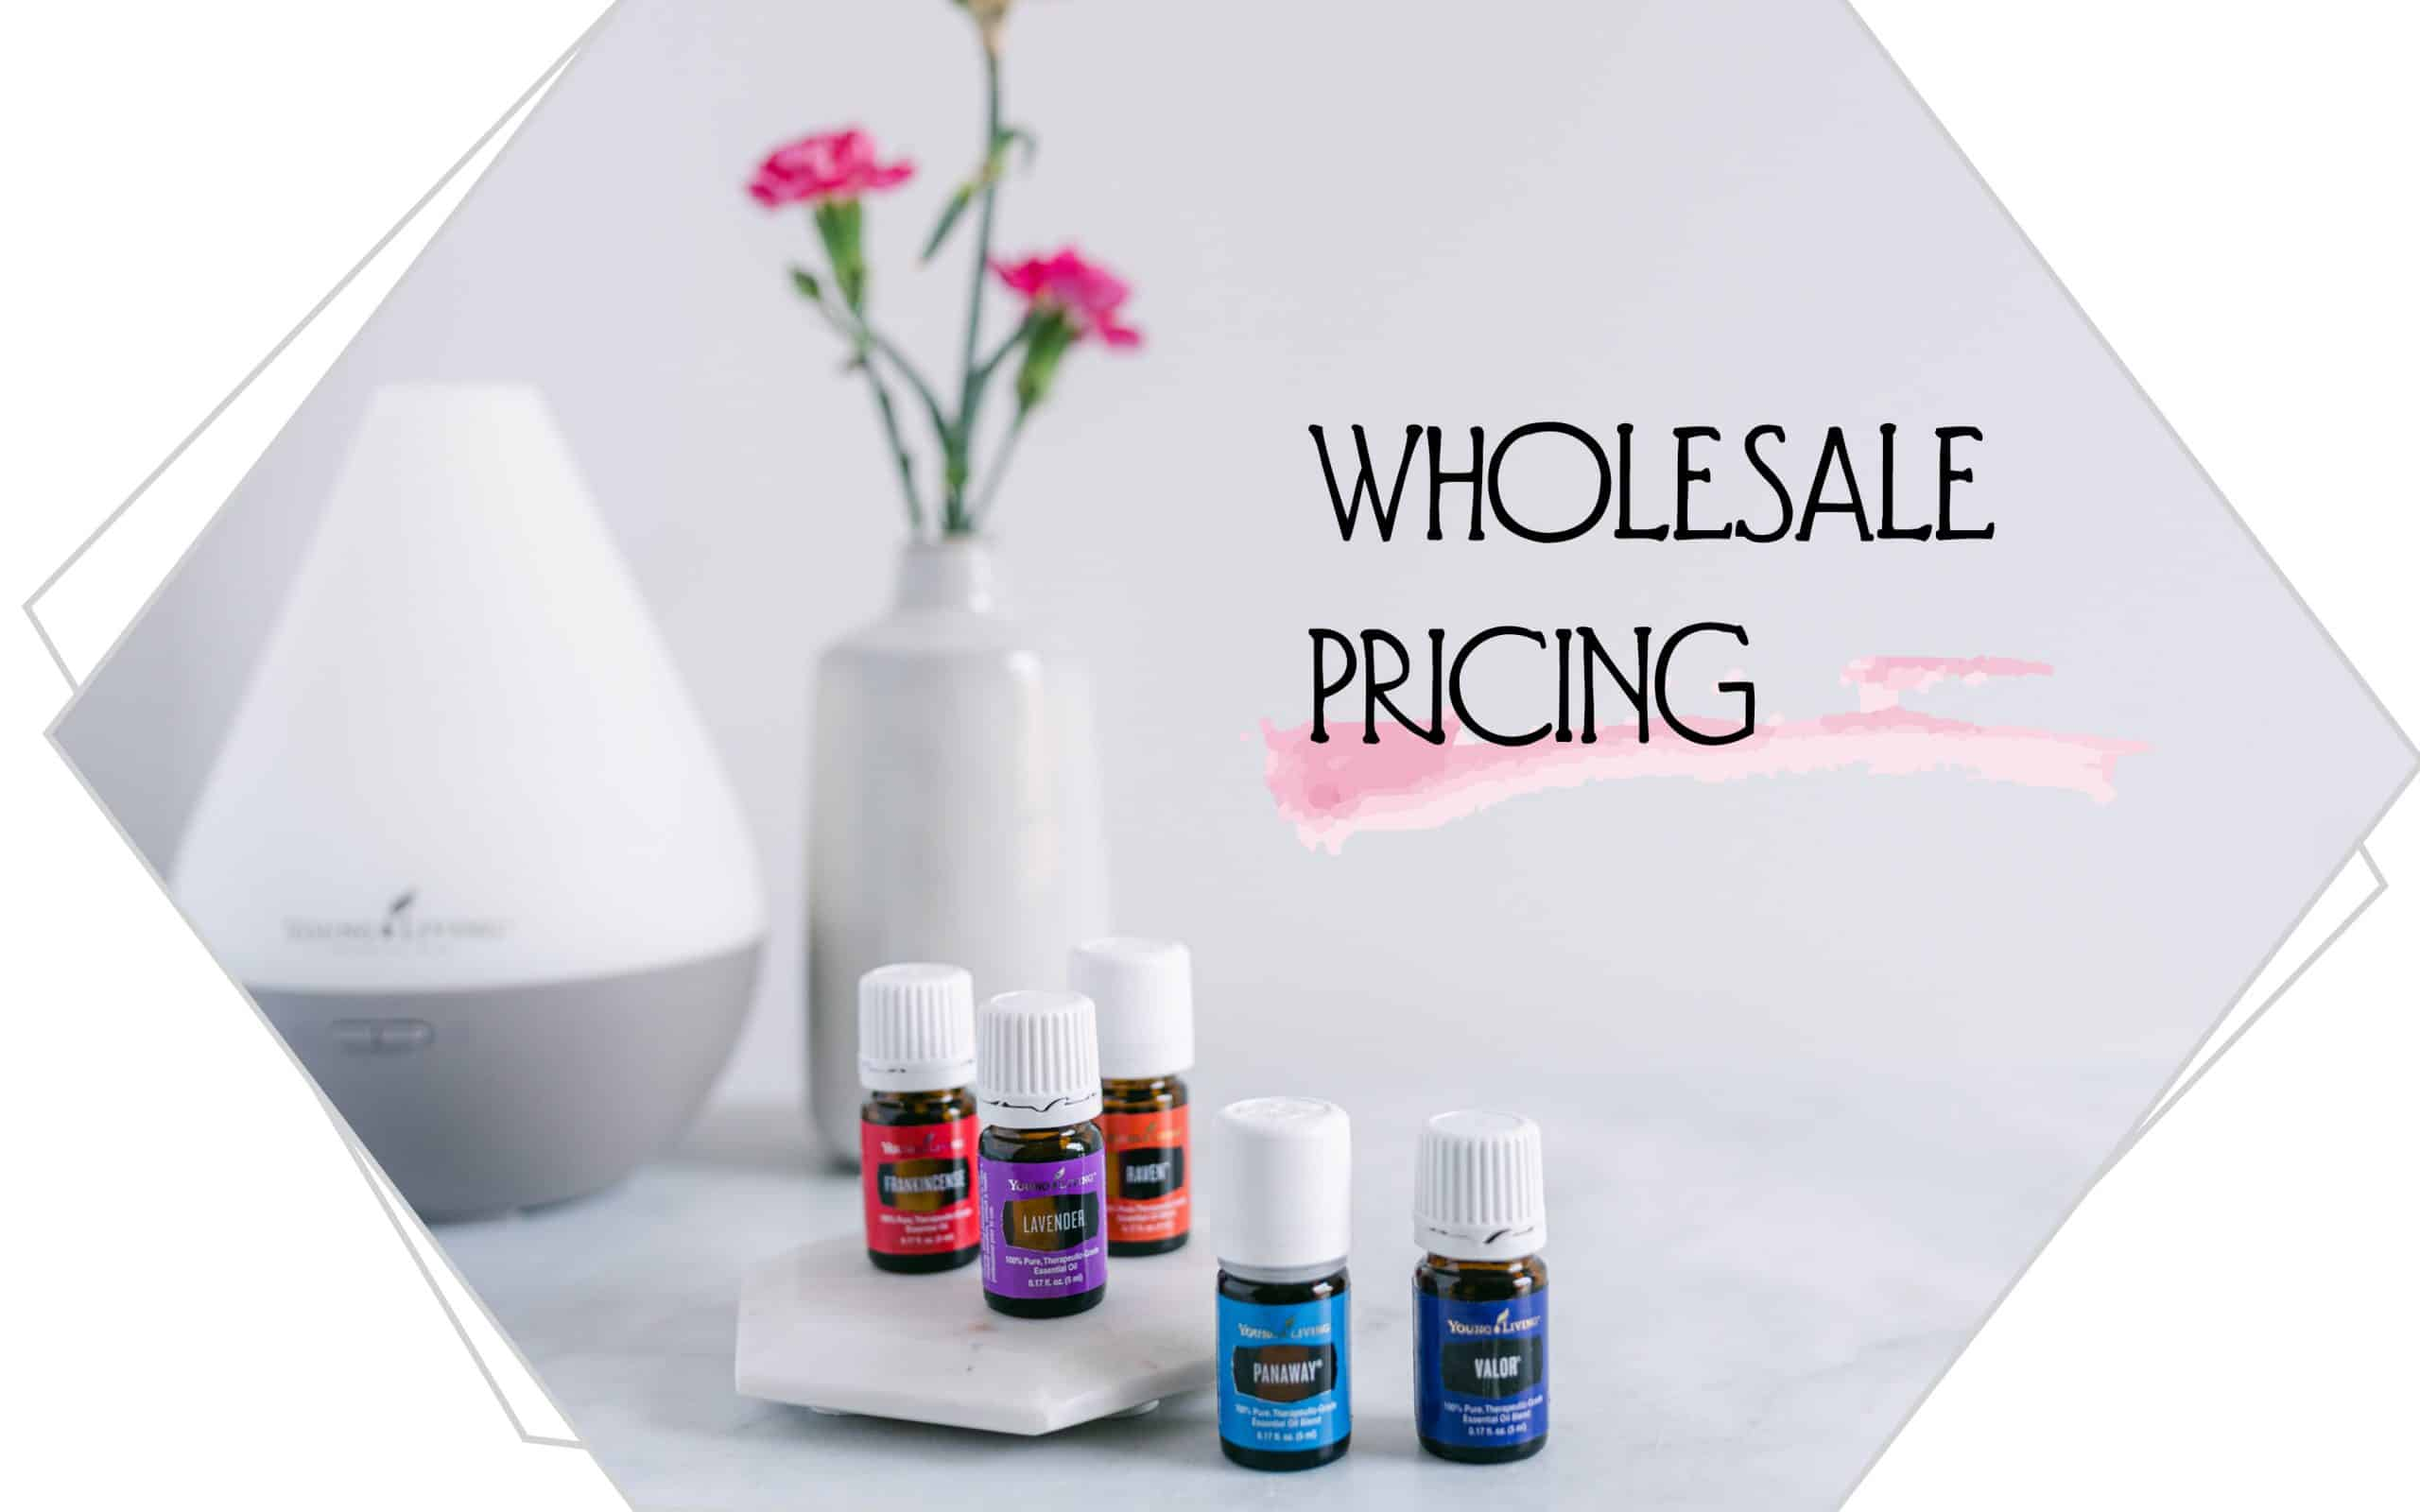 Wholesale Pricing written a background with essential oils , a diffuser and a vase of pink carnations